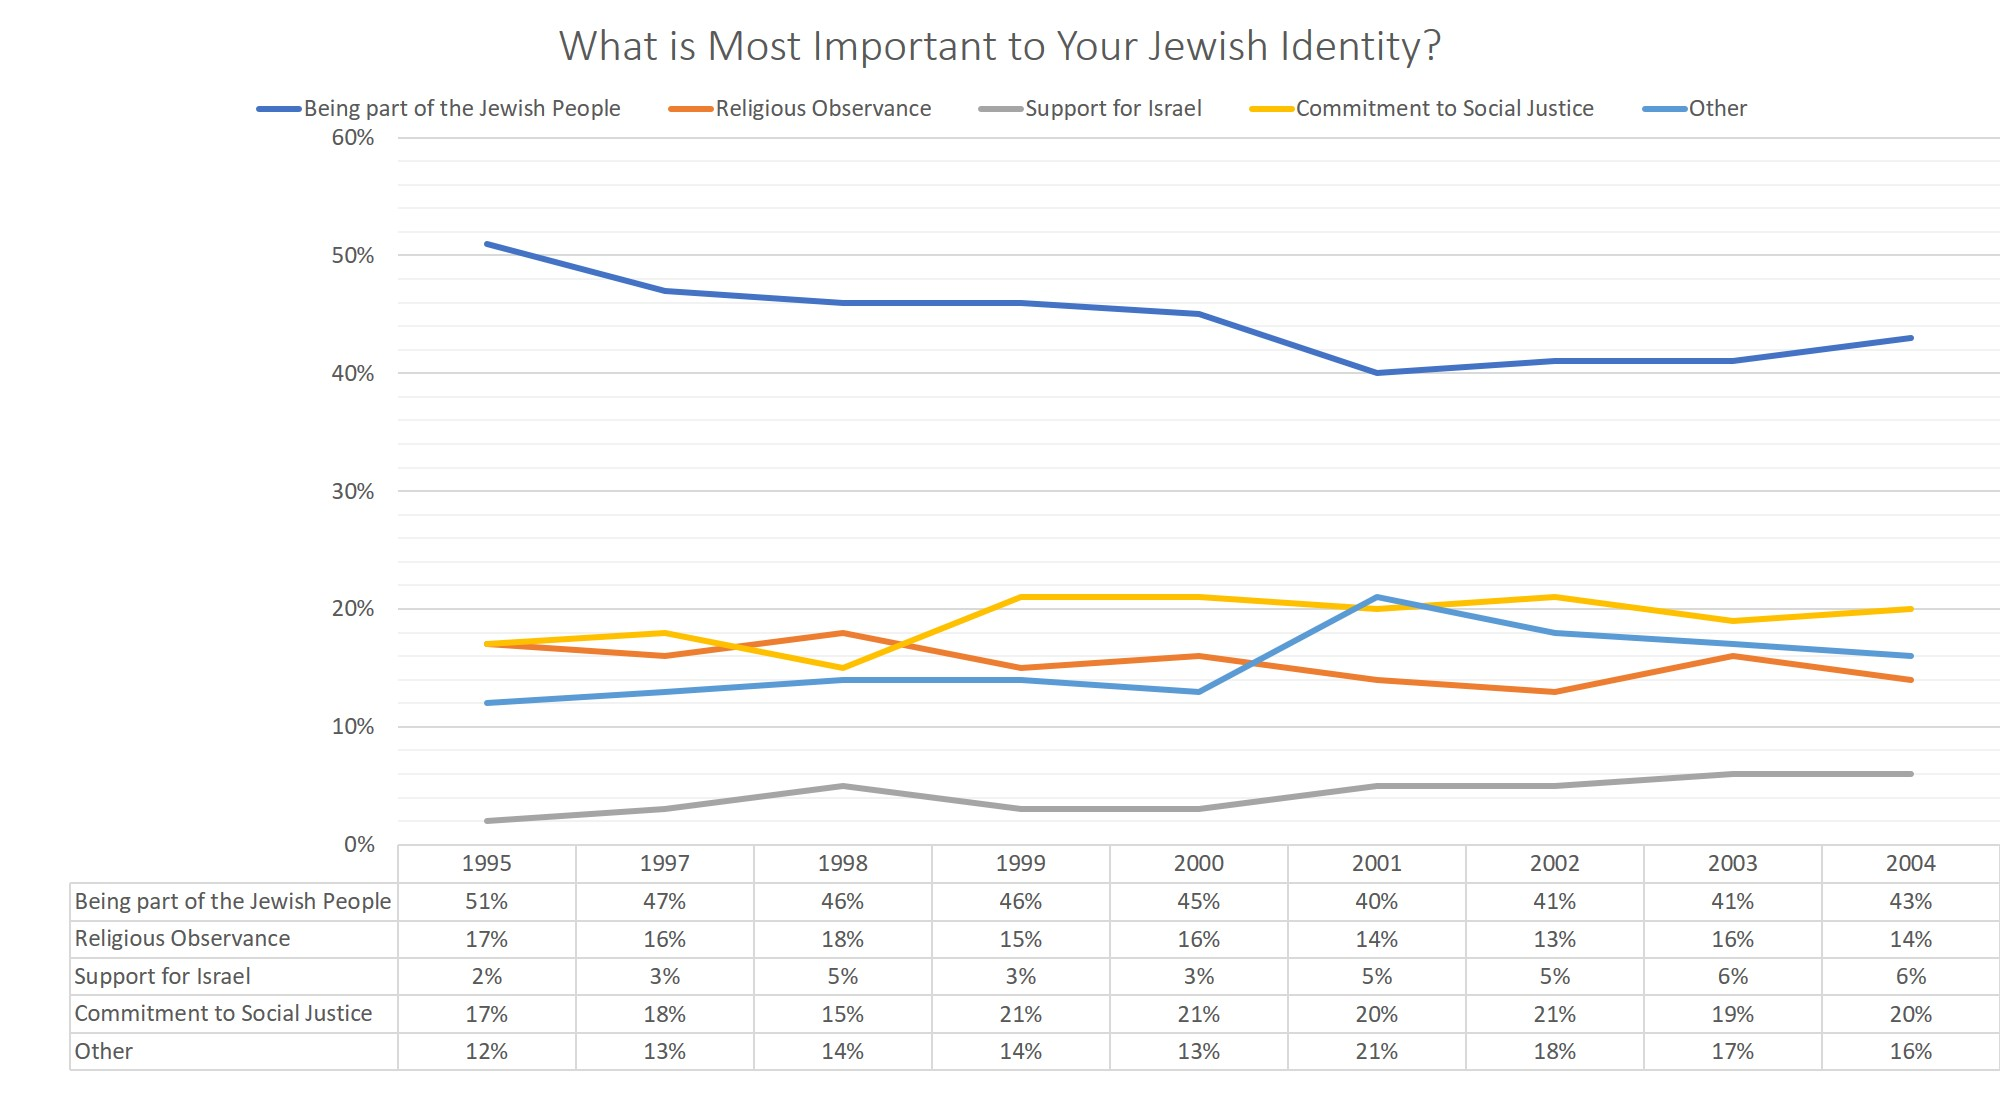 What is Most Important to your Jewish Identity